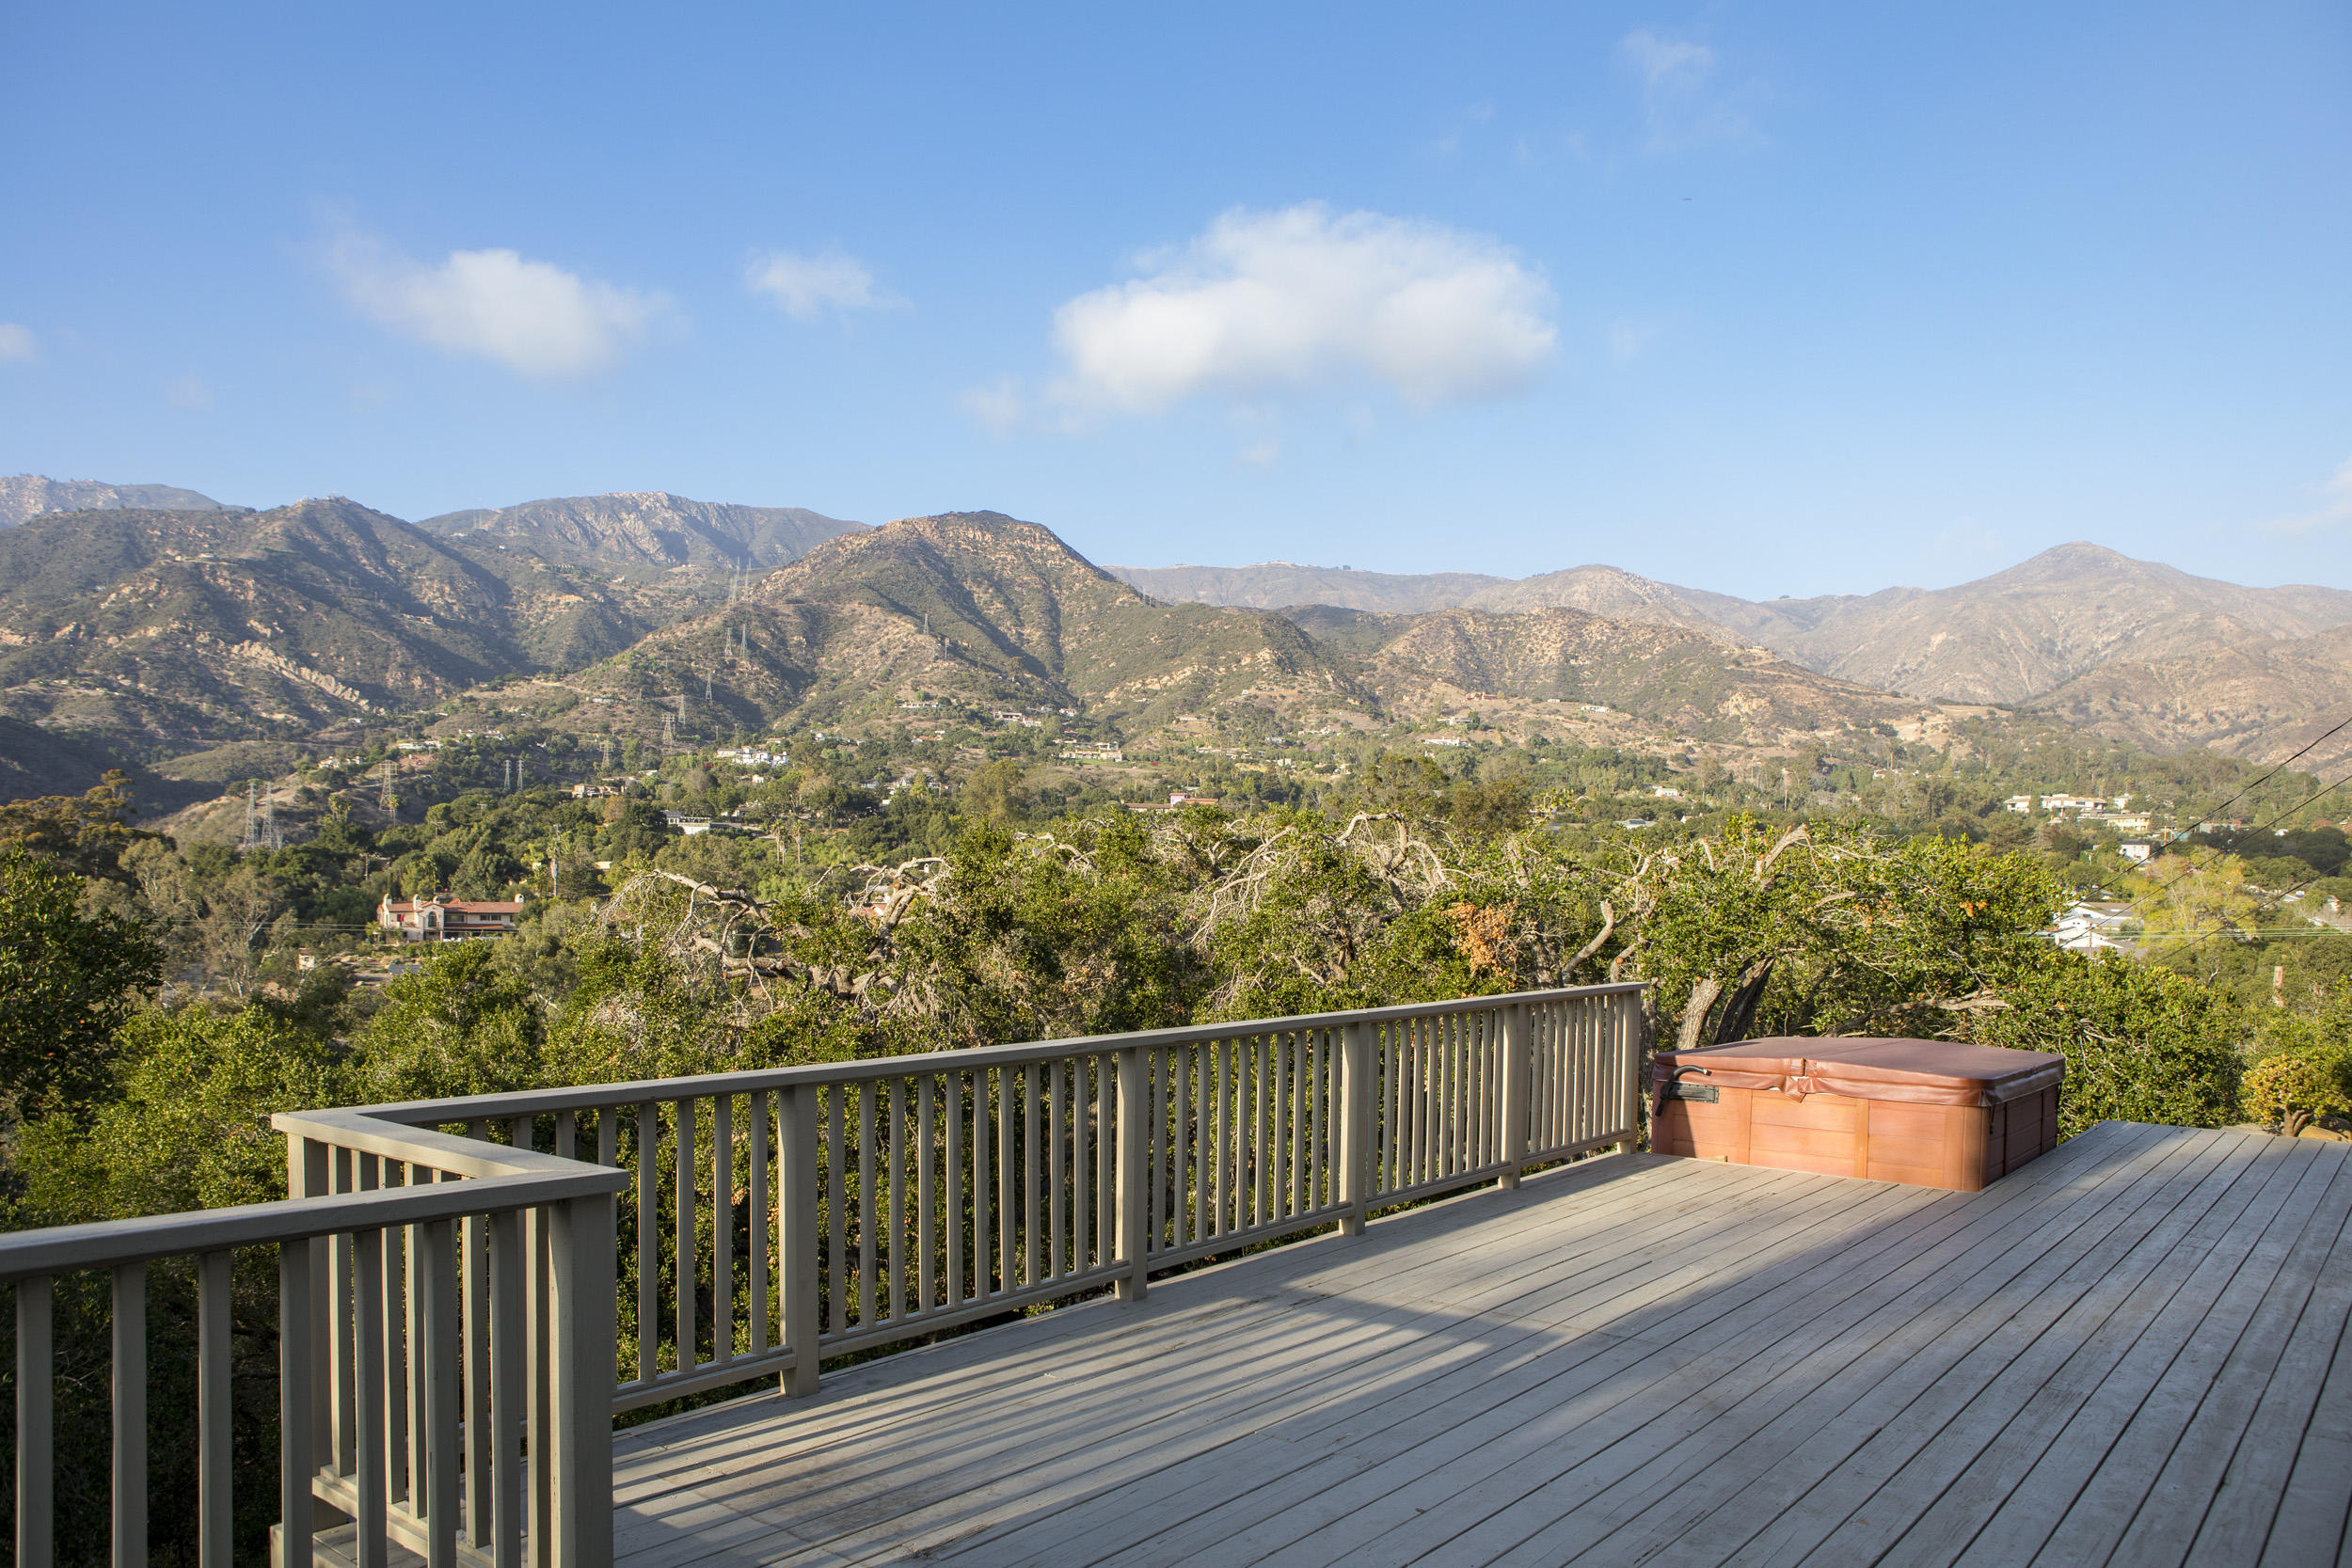 Property photo for 230 Sierra Vista Rd Santa Barbara, California 93108 - 18-4053